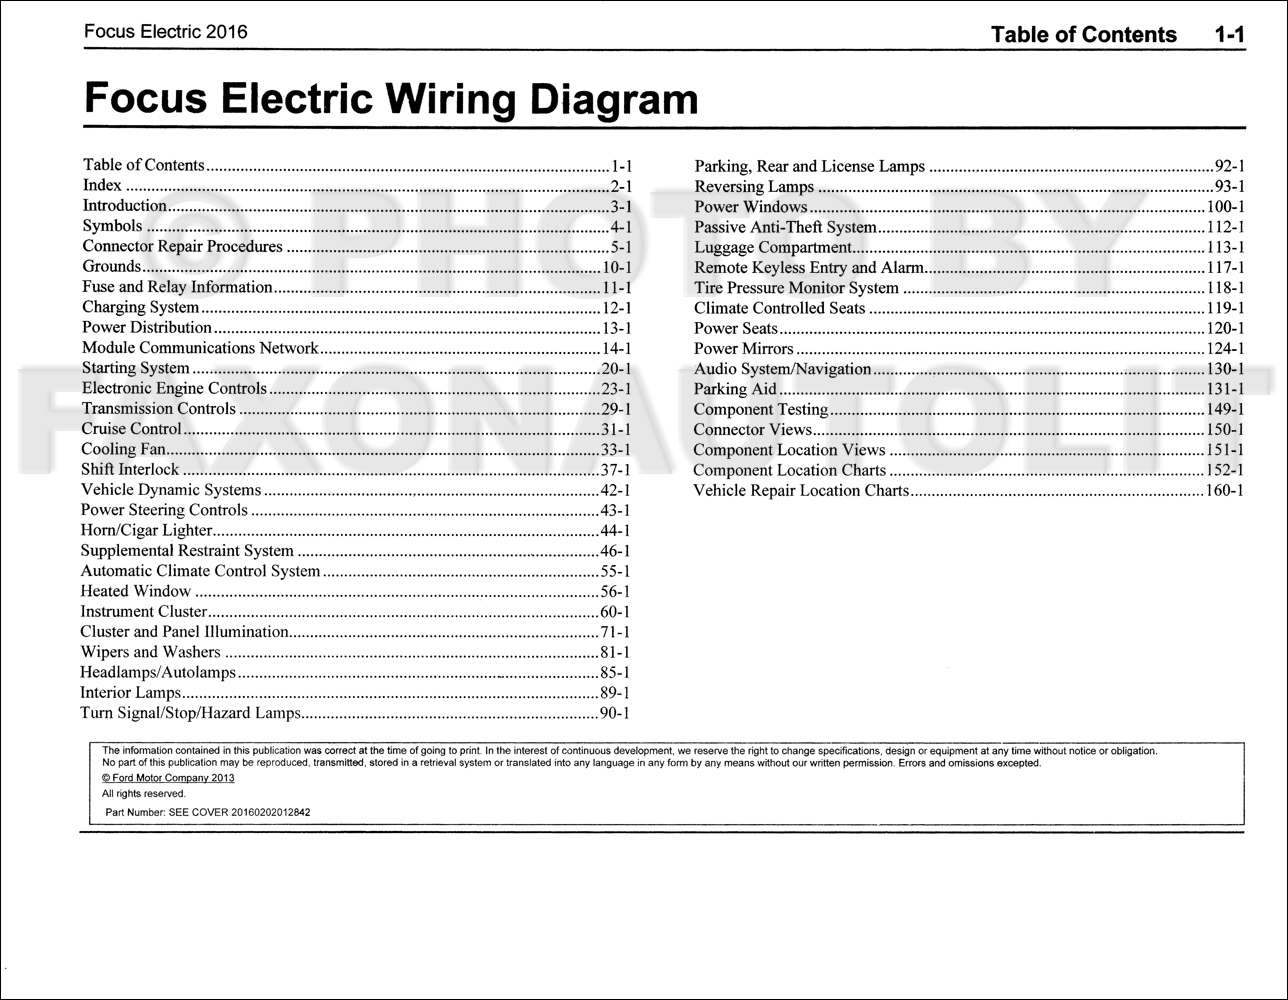 Fordfocuselectricowd Toc on 1939 Ford Wiring Diagram